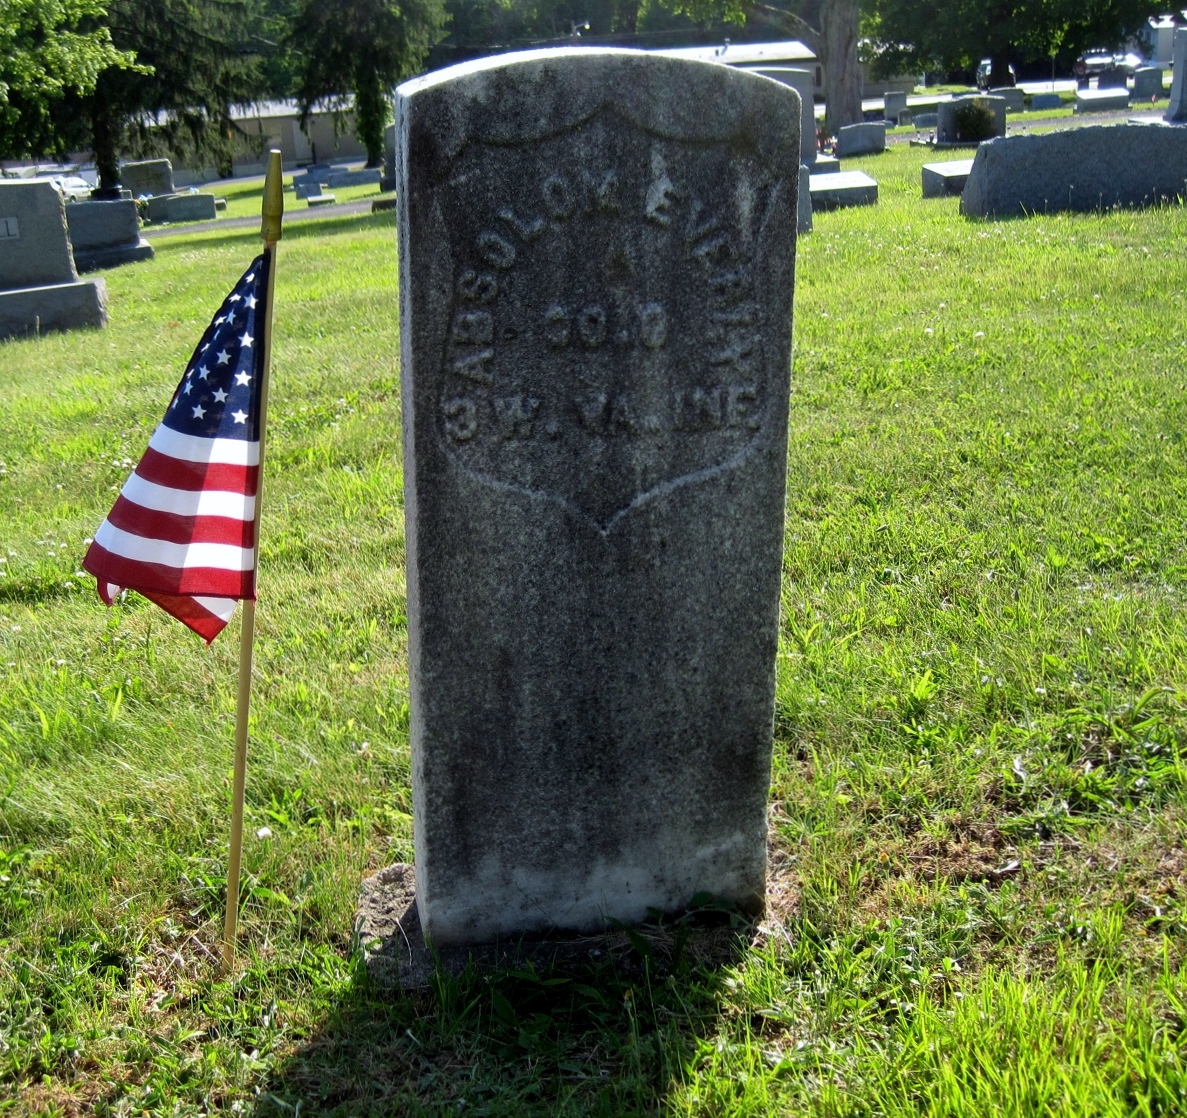 Pvt Absalom H. Everly